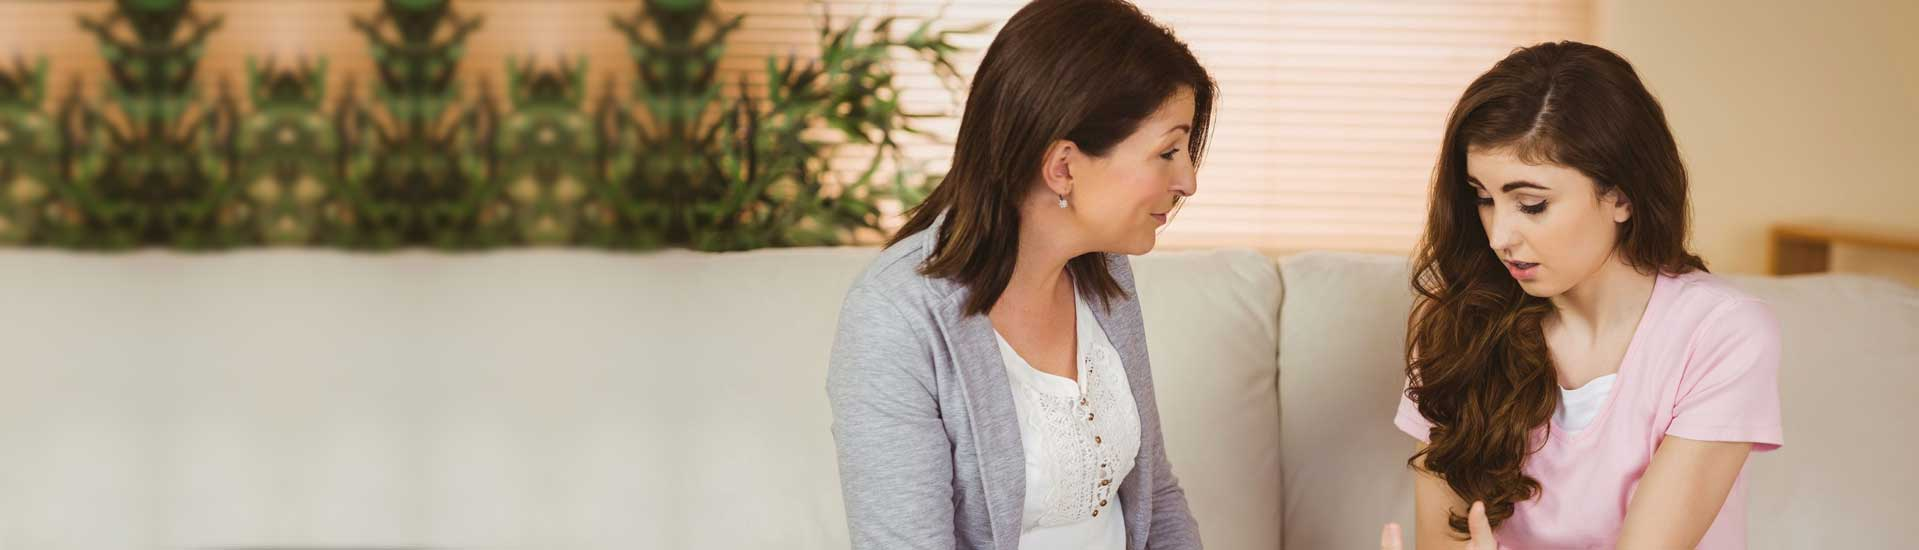 Counseling Support for Adoption